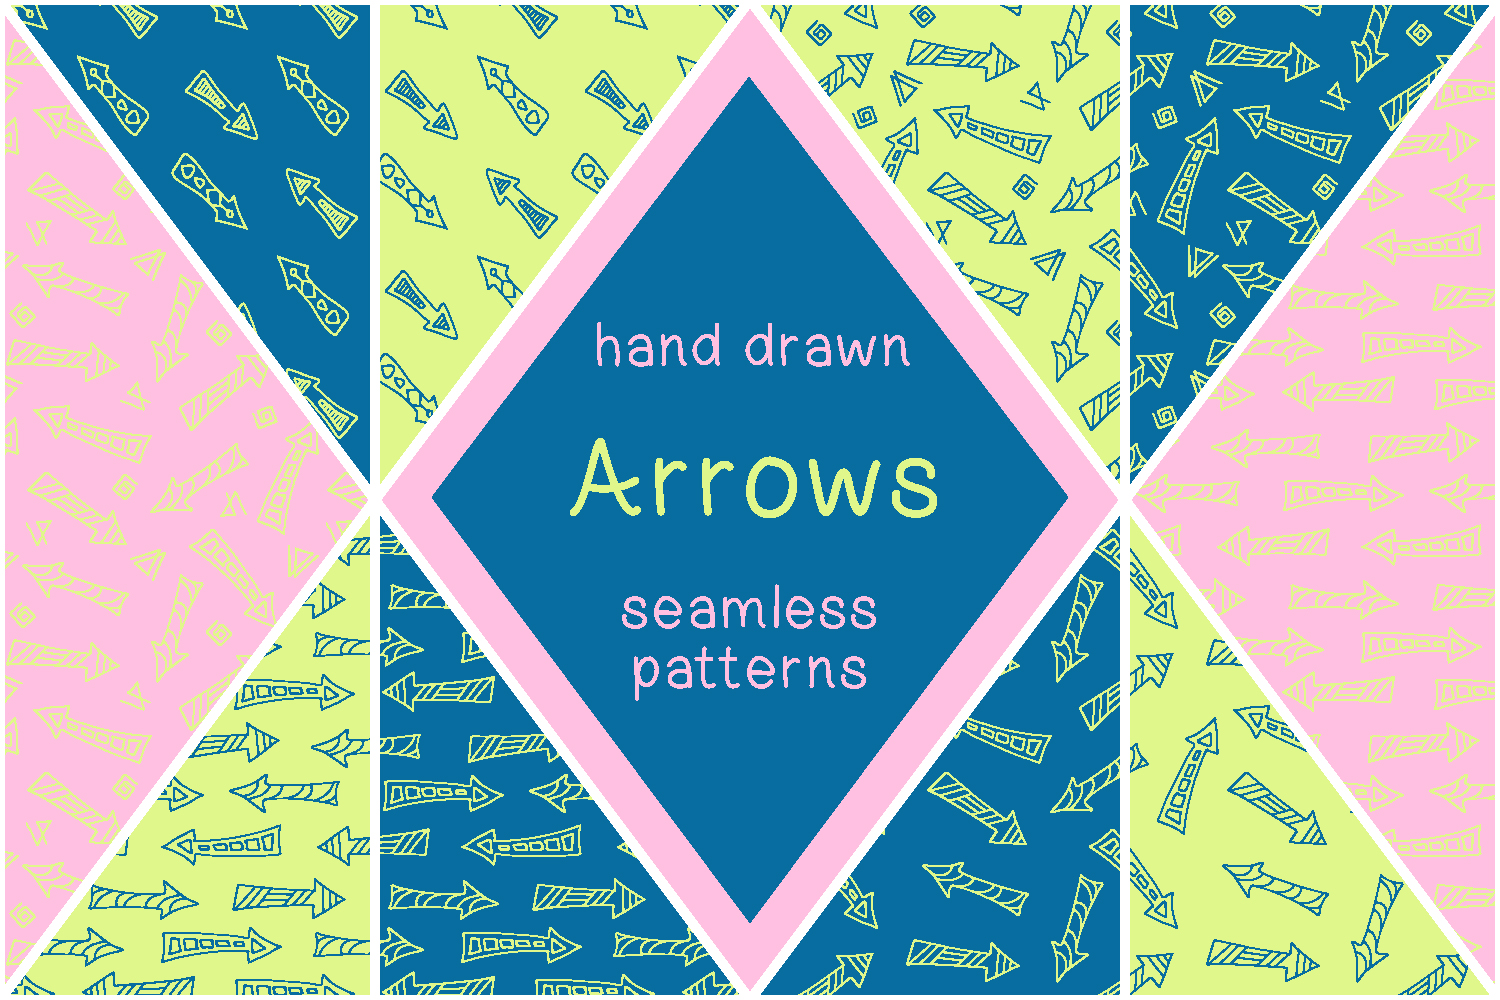 Hand drawn arrows - vector patterns example image 1